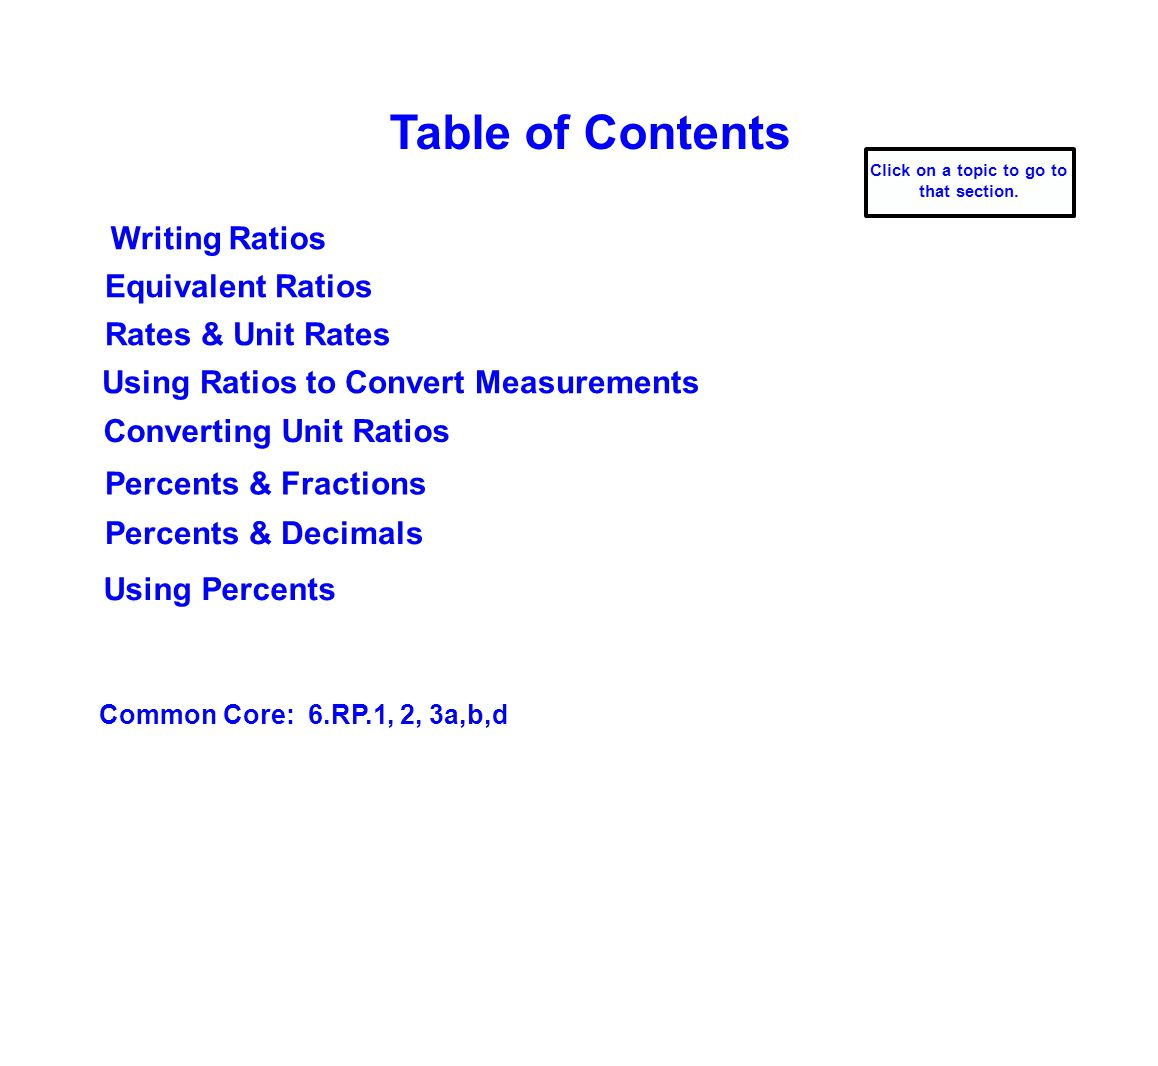 Table of Contents Writing Ratios Converting Unit Ratios Rates & Unit Rates Common Core: 6.RP.1, 2, 3a,b,d Using Ratios to Convert Measurements Equivalent Ratios Percents & Fractions Percents & Decimals Using Percents Click on a topic to go to that section.